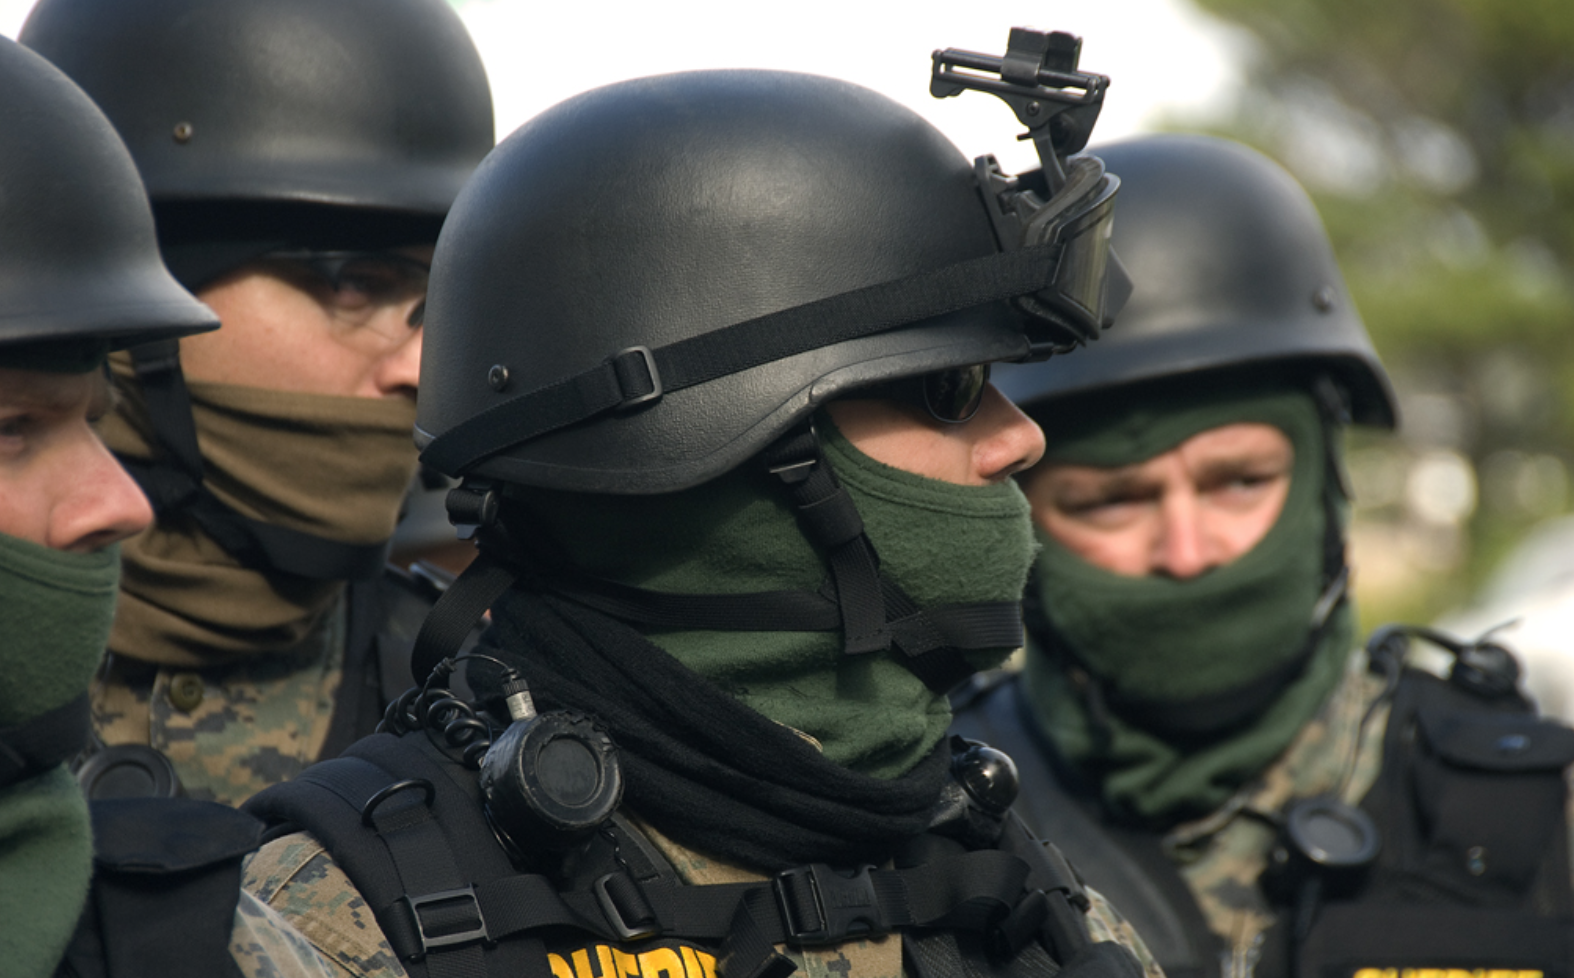 swat_tactical_helmet_protest_riot_gear